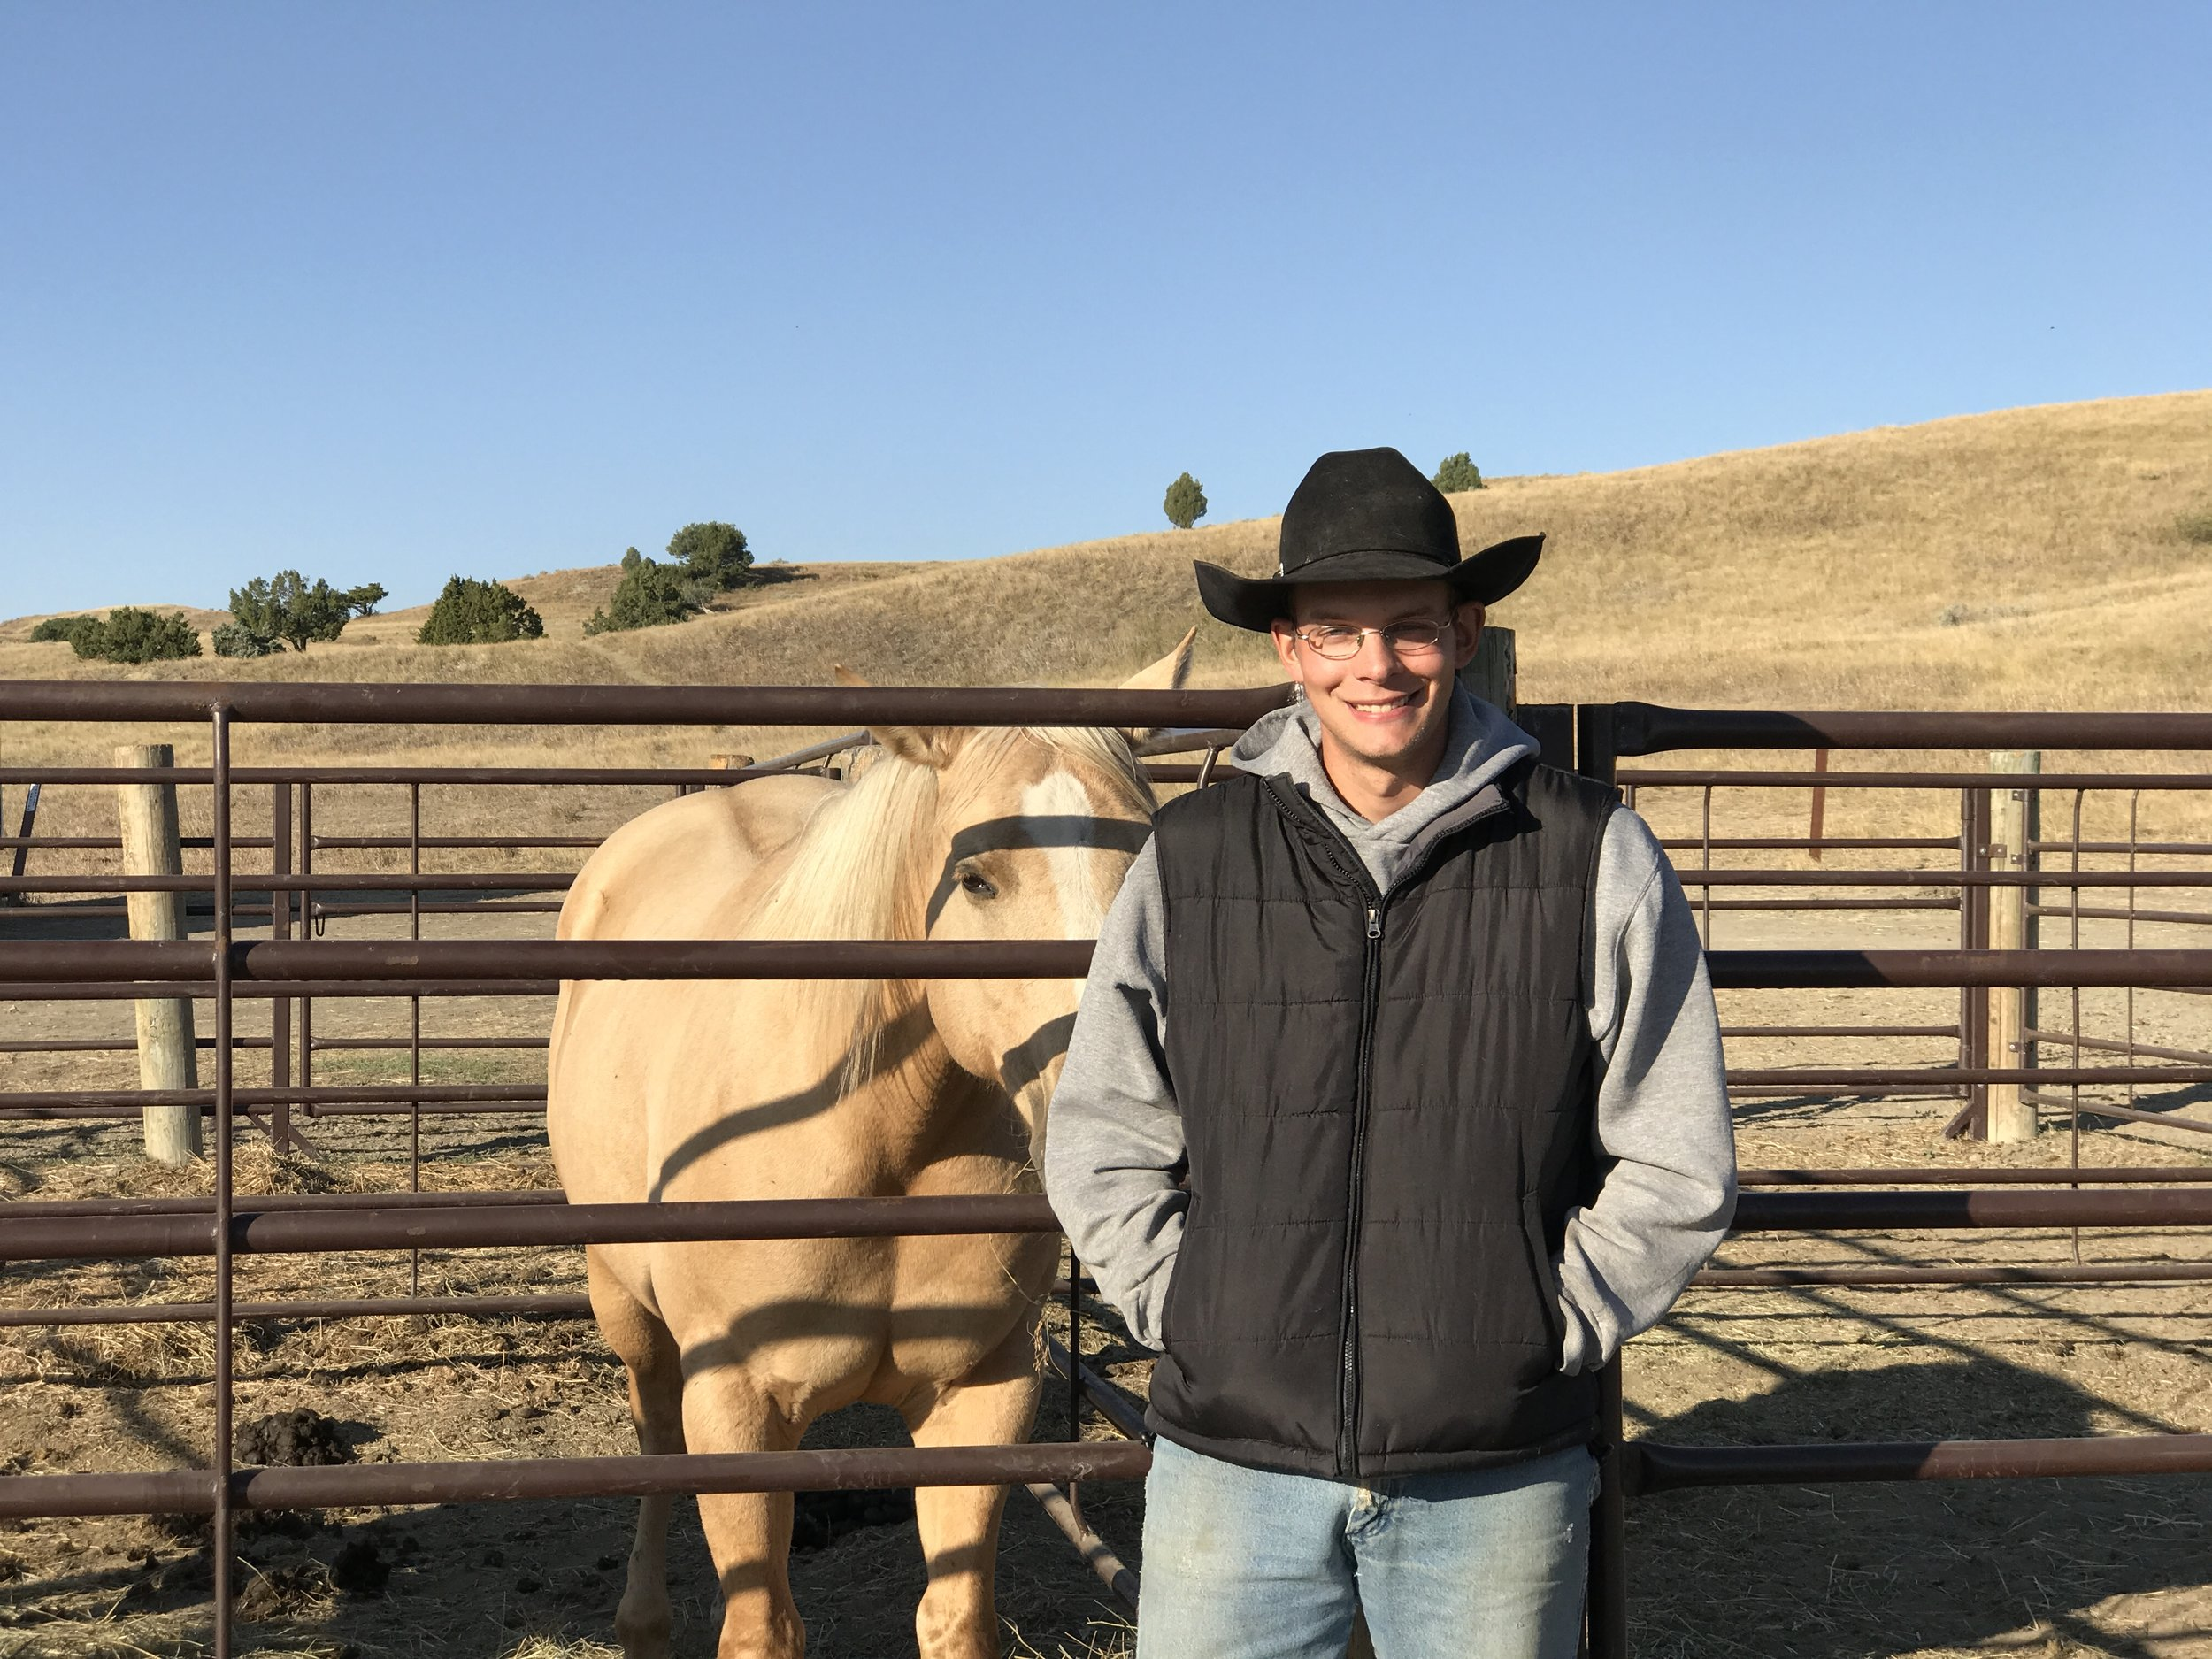 One of our fellow campers, a cattle rangler, saddle trainer and ferrier. .